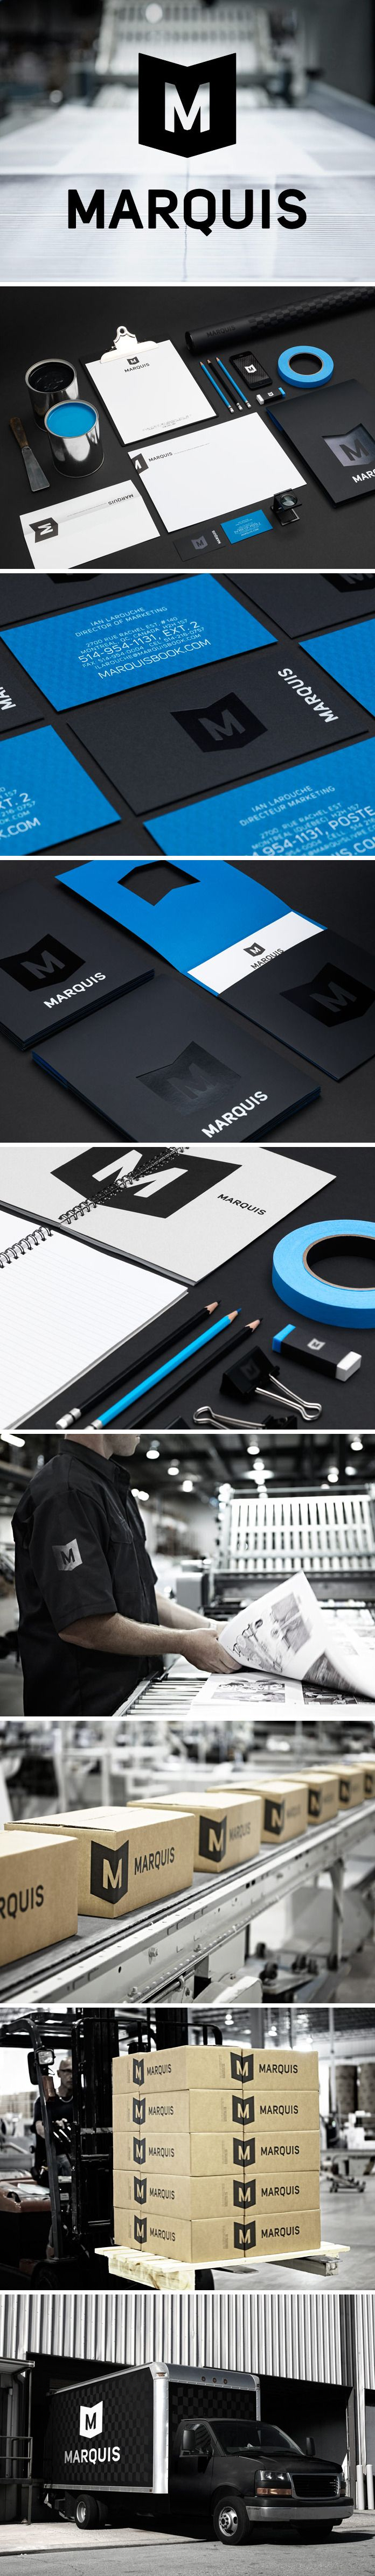 Marquis by lg2 #identity #packaging #branding PD